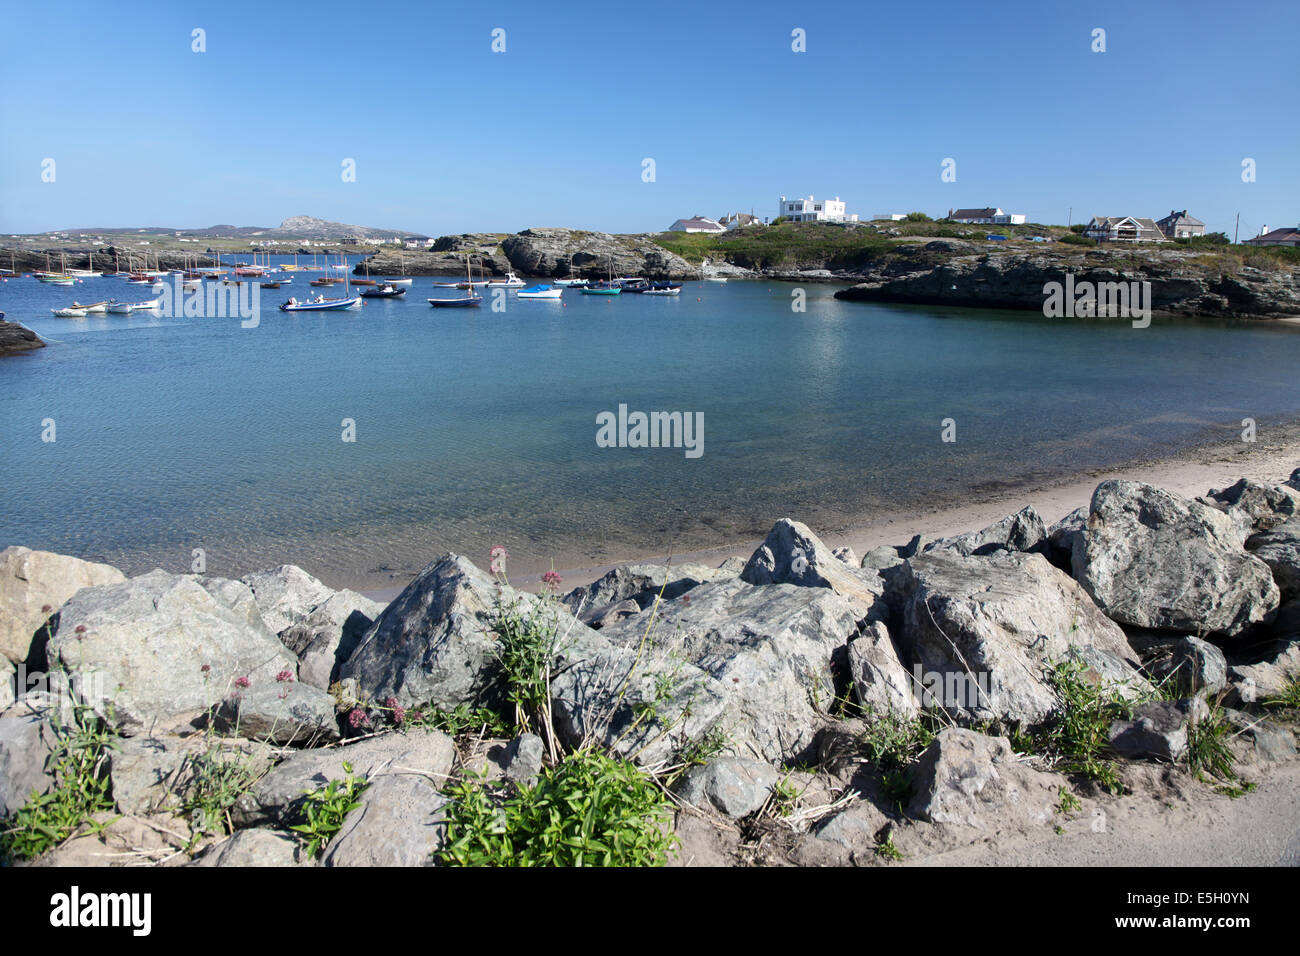 A quiet backwater in North wales on a sunny day in July - Stock Image